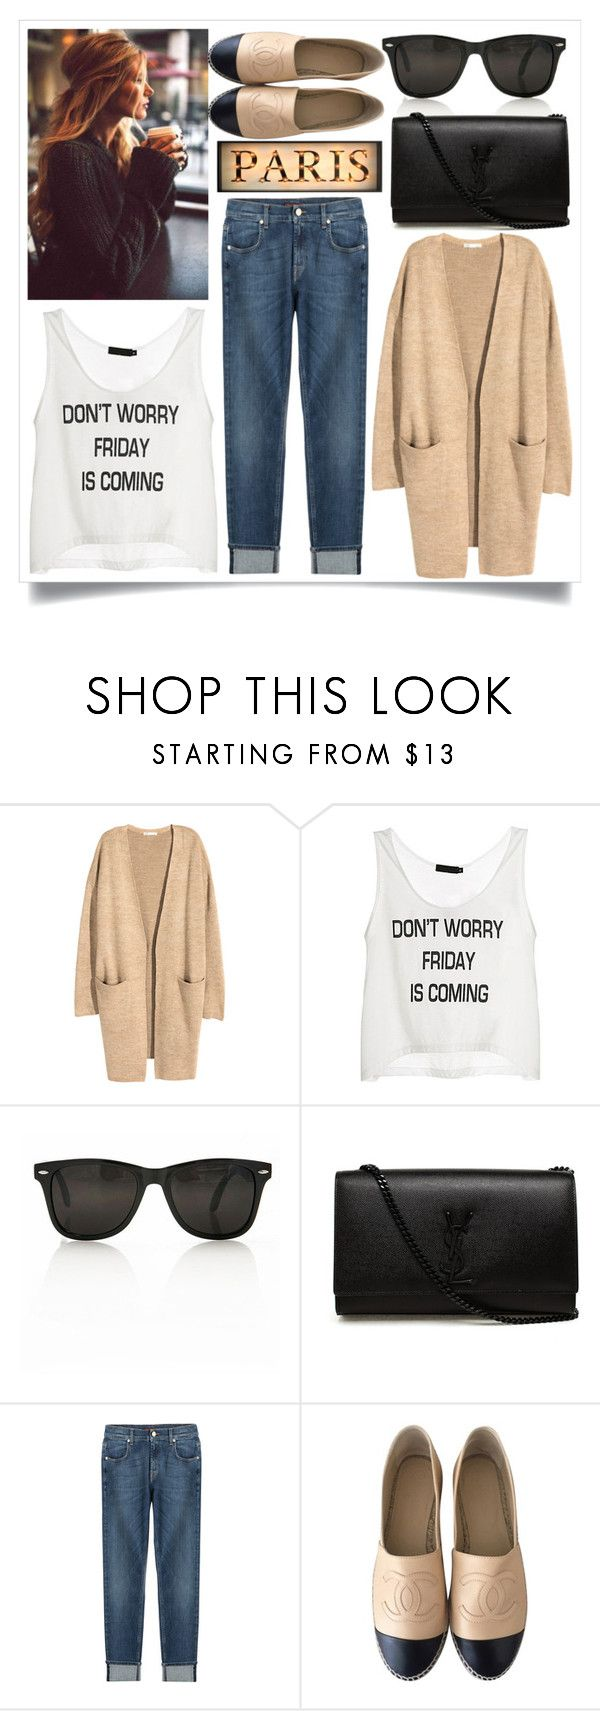 """""""Street Style"""" by madeinmalaysia ❤ liked on Polyvore featuring H&M, Yves Saint Laurent, 7 For All Mankind and Chanel"""